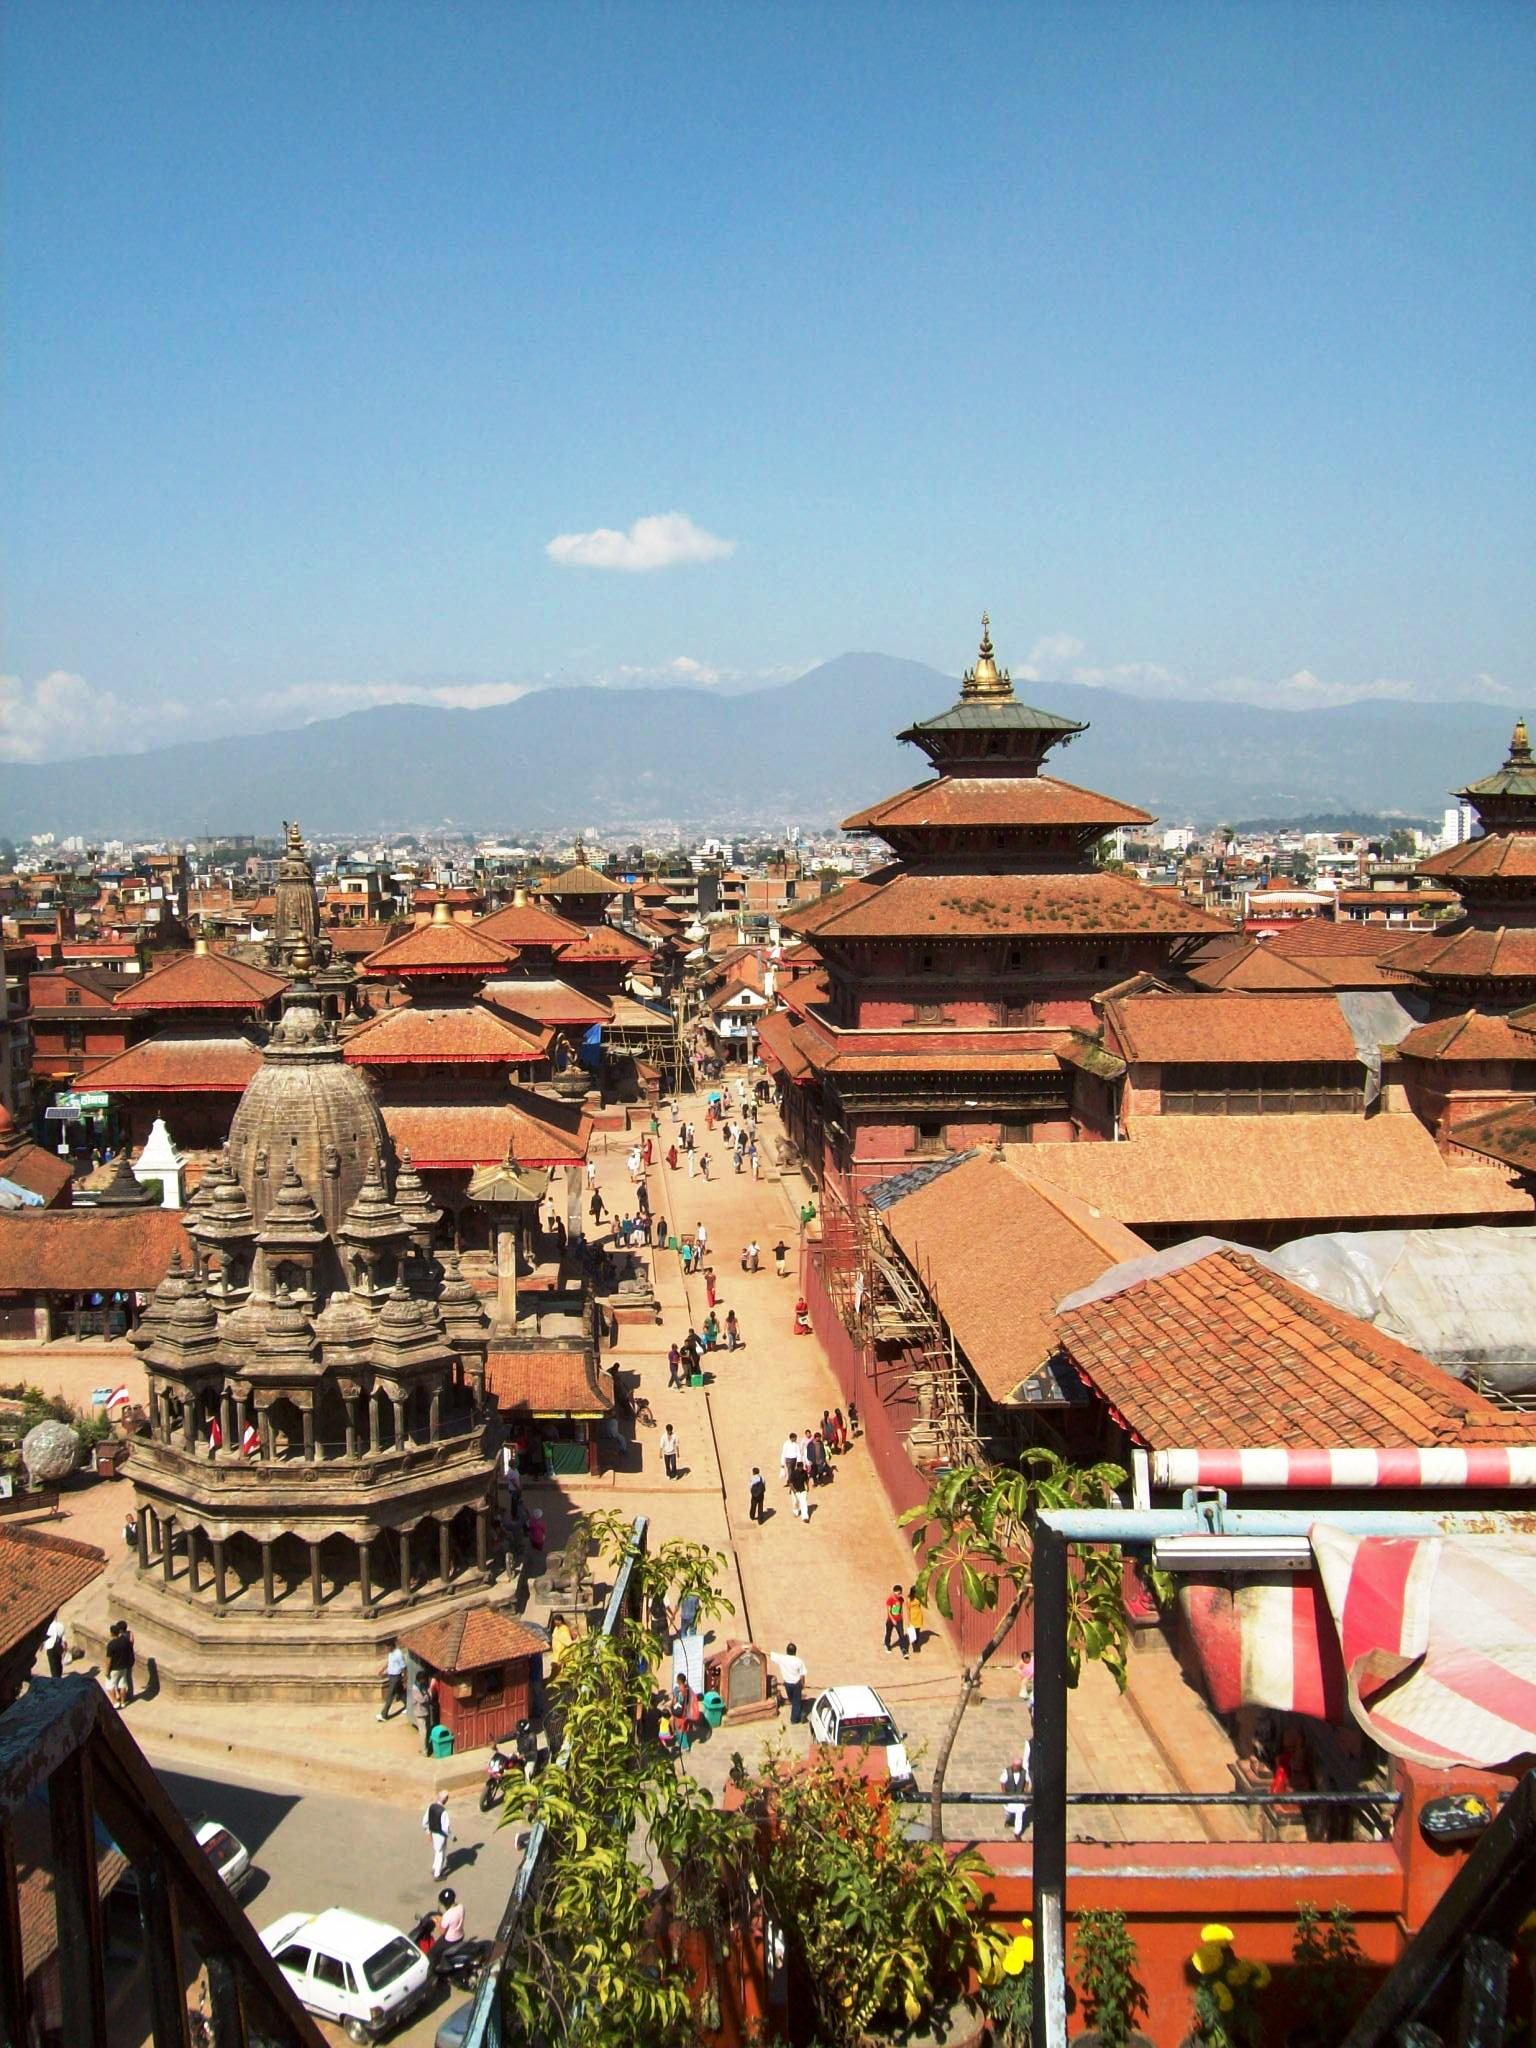 Patan Durbar Square afternoon with Himalayas